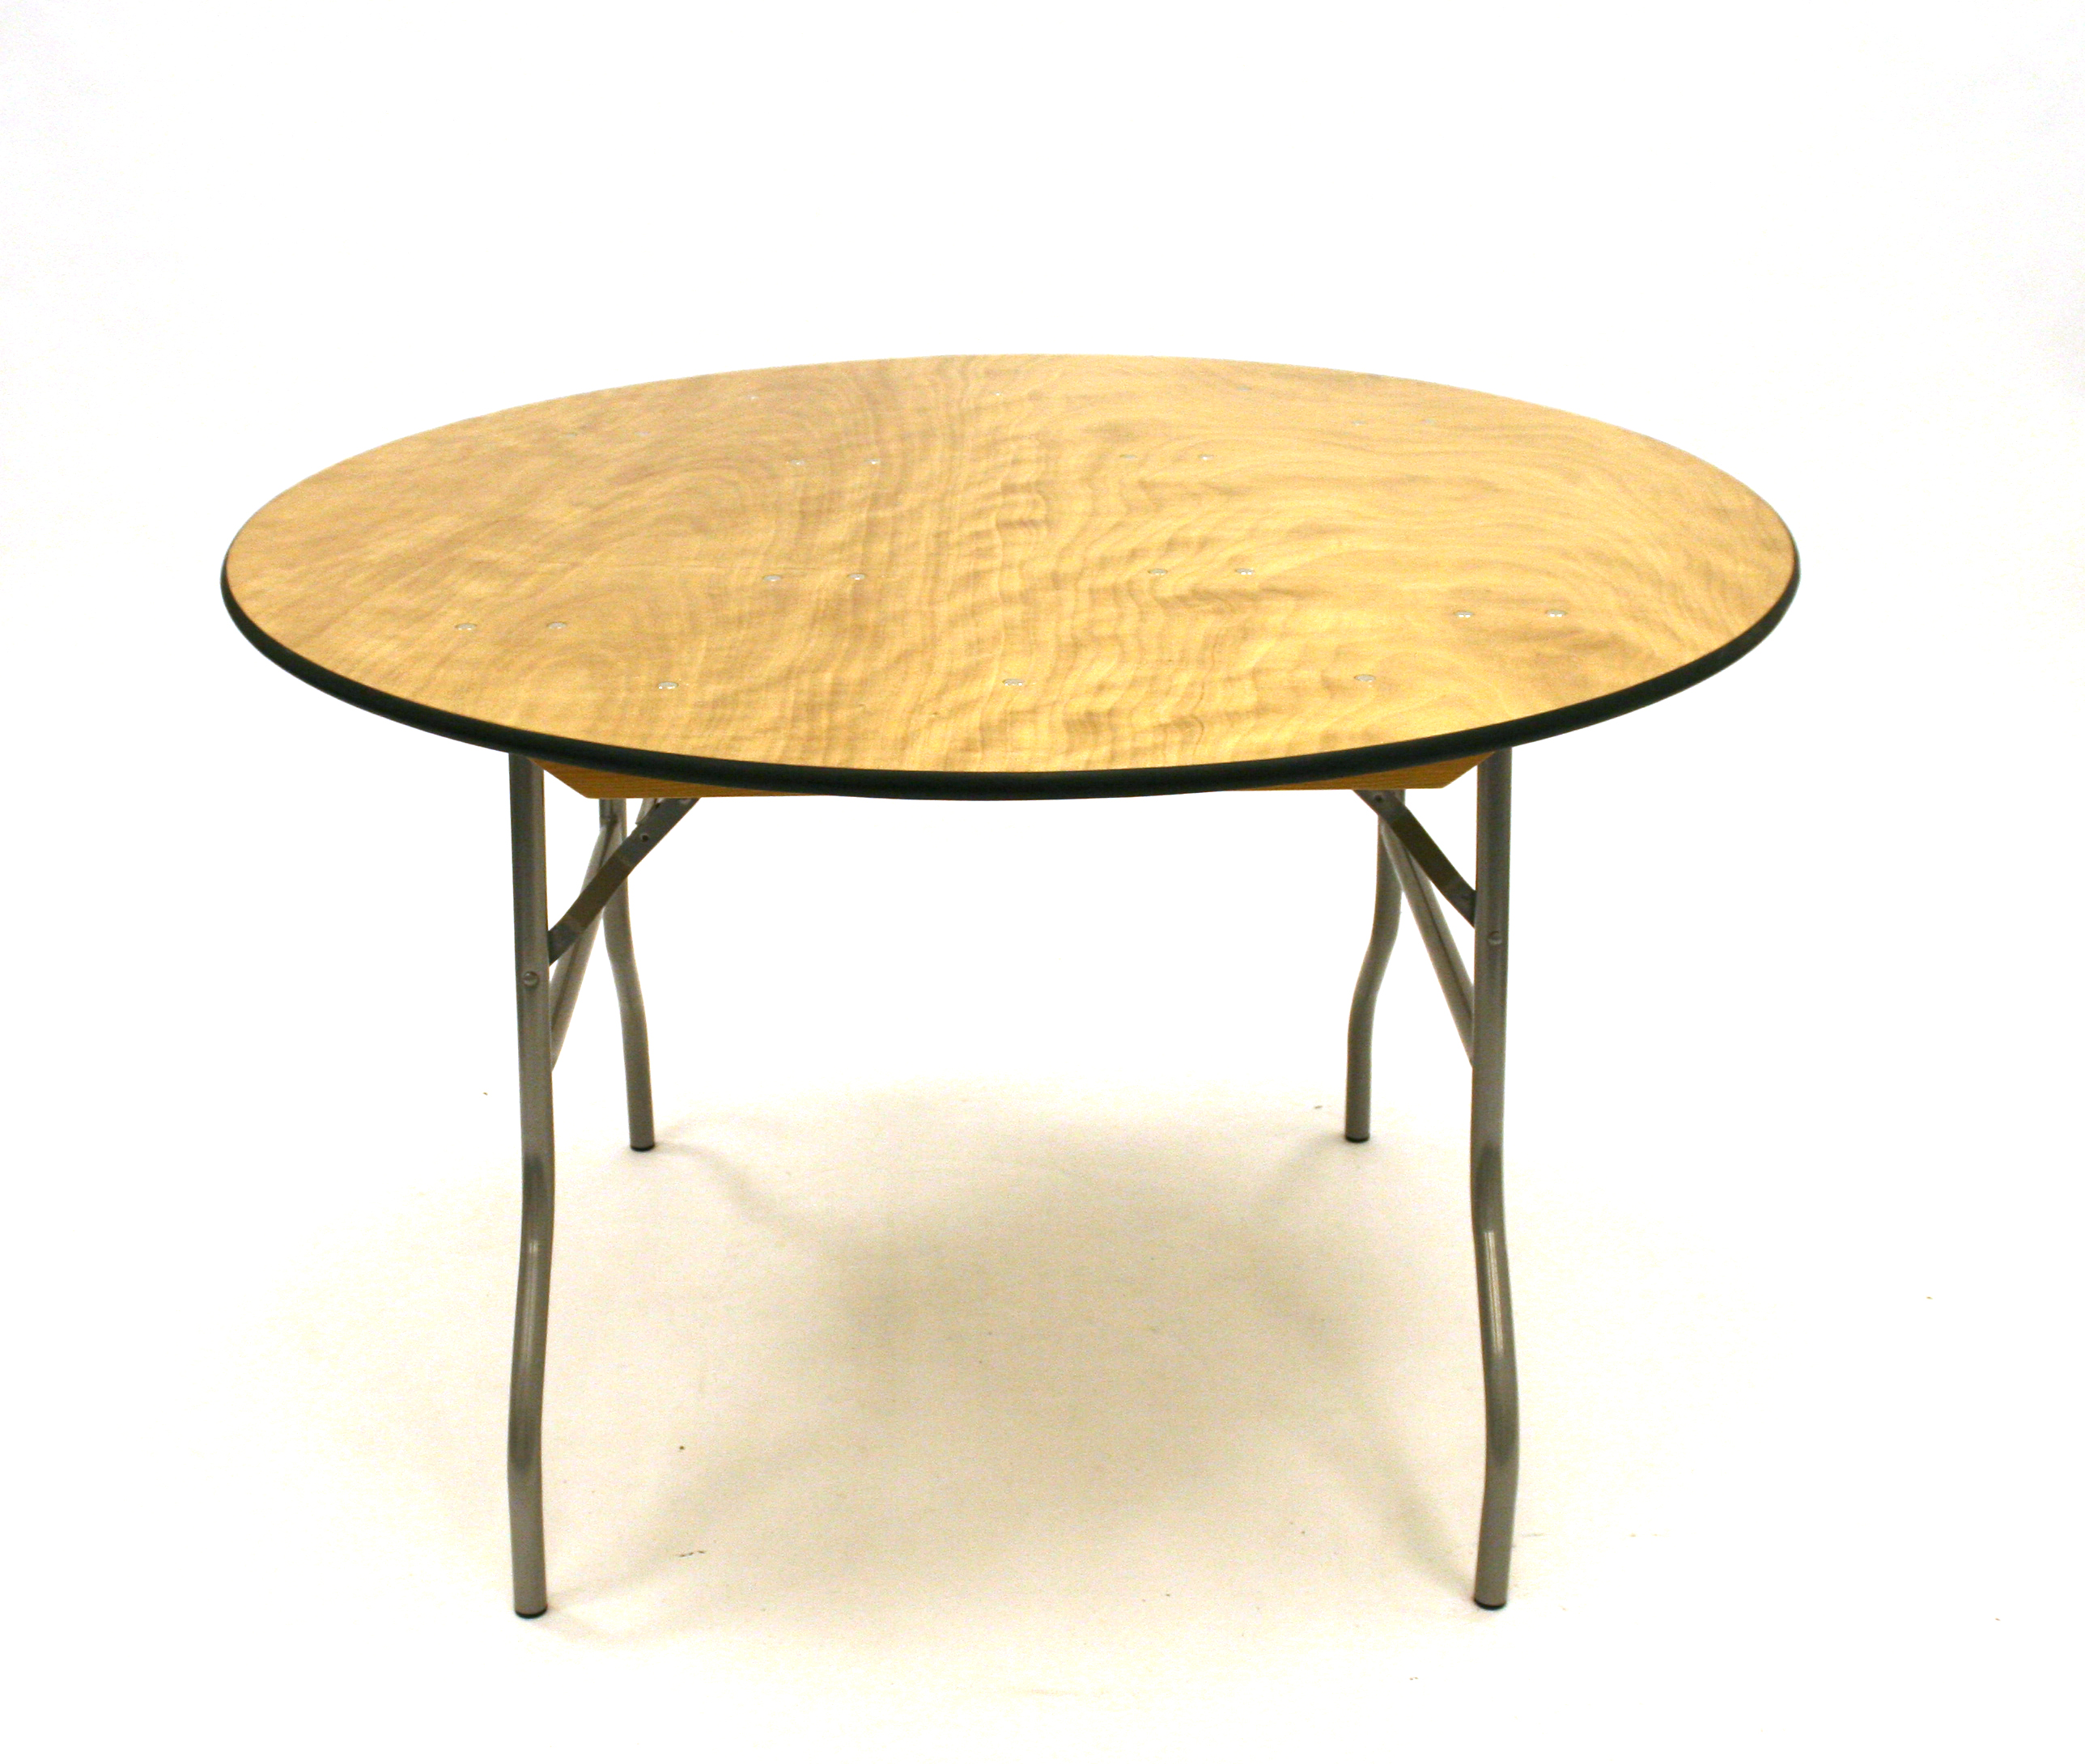 "Round Banqueting Tables - 5'6"" Diameter Varnished - BE Furniture Sales"